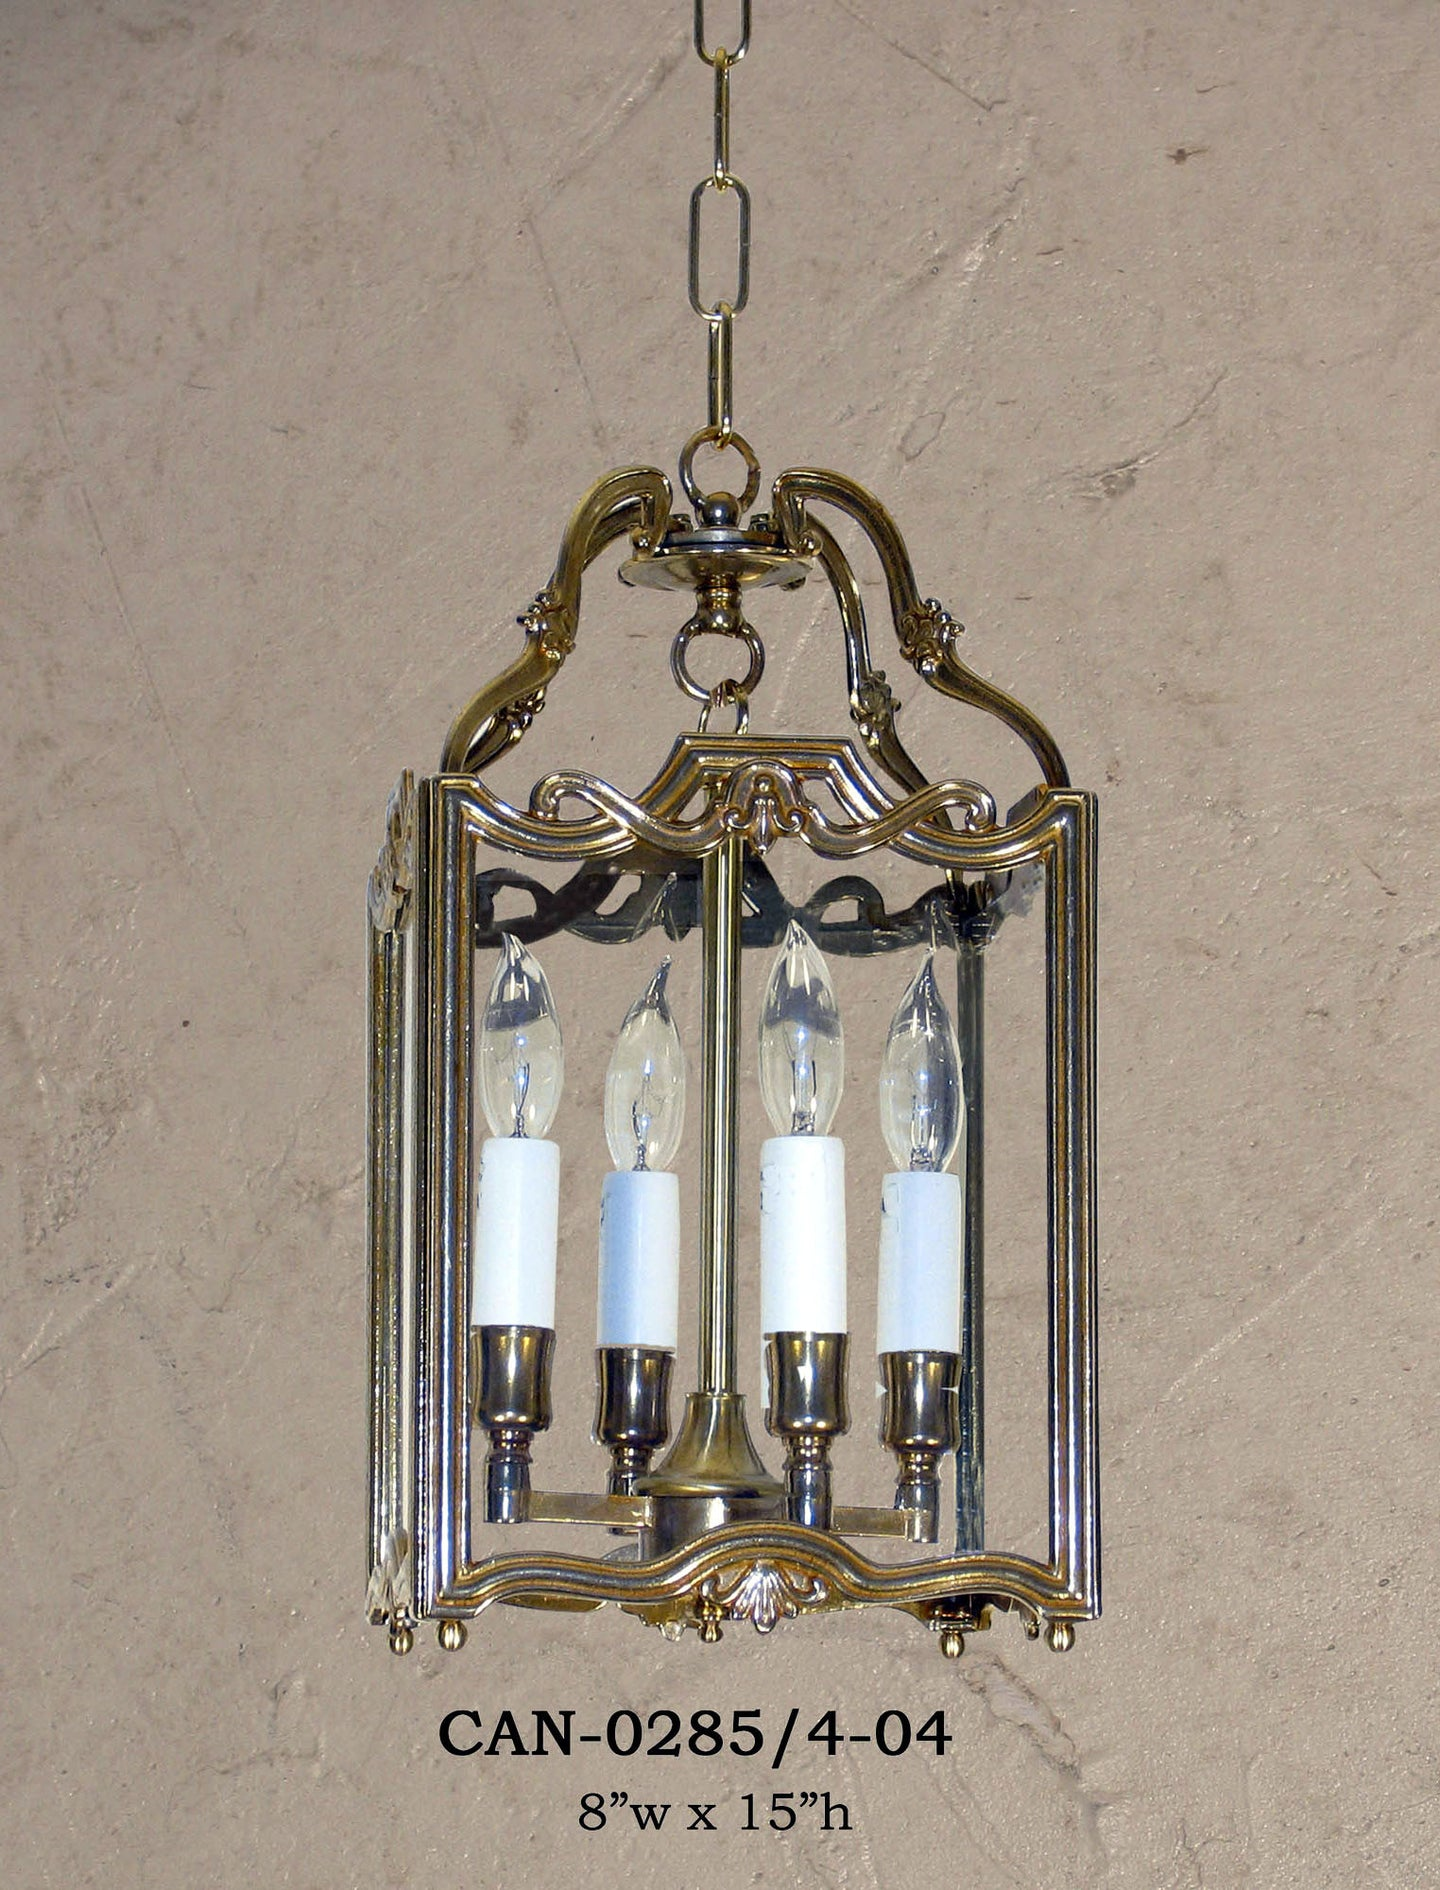 Brass Lantern and Pendant - CAN-0285/4-04Pendant - Graham's Lighting Memphis, TN